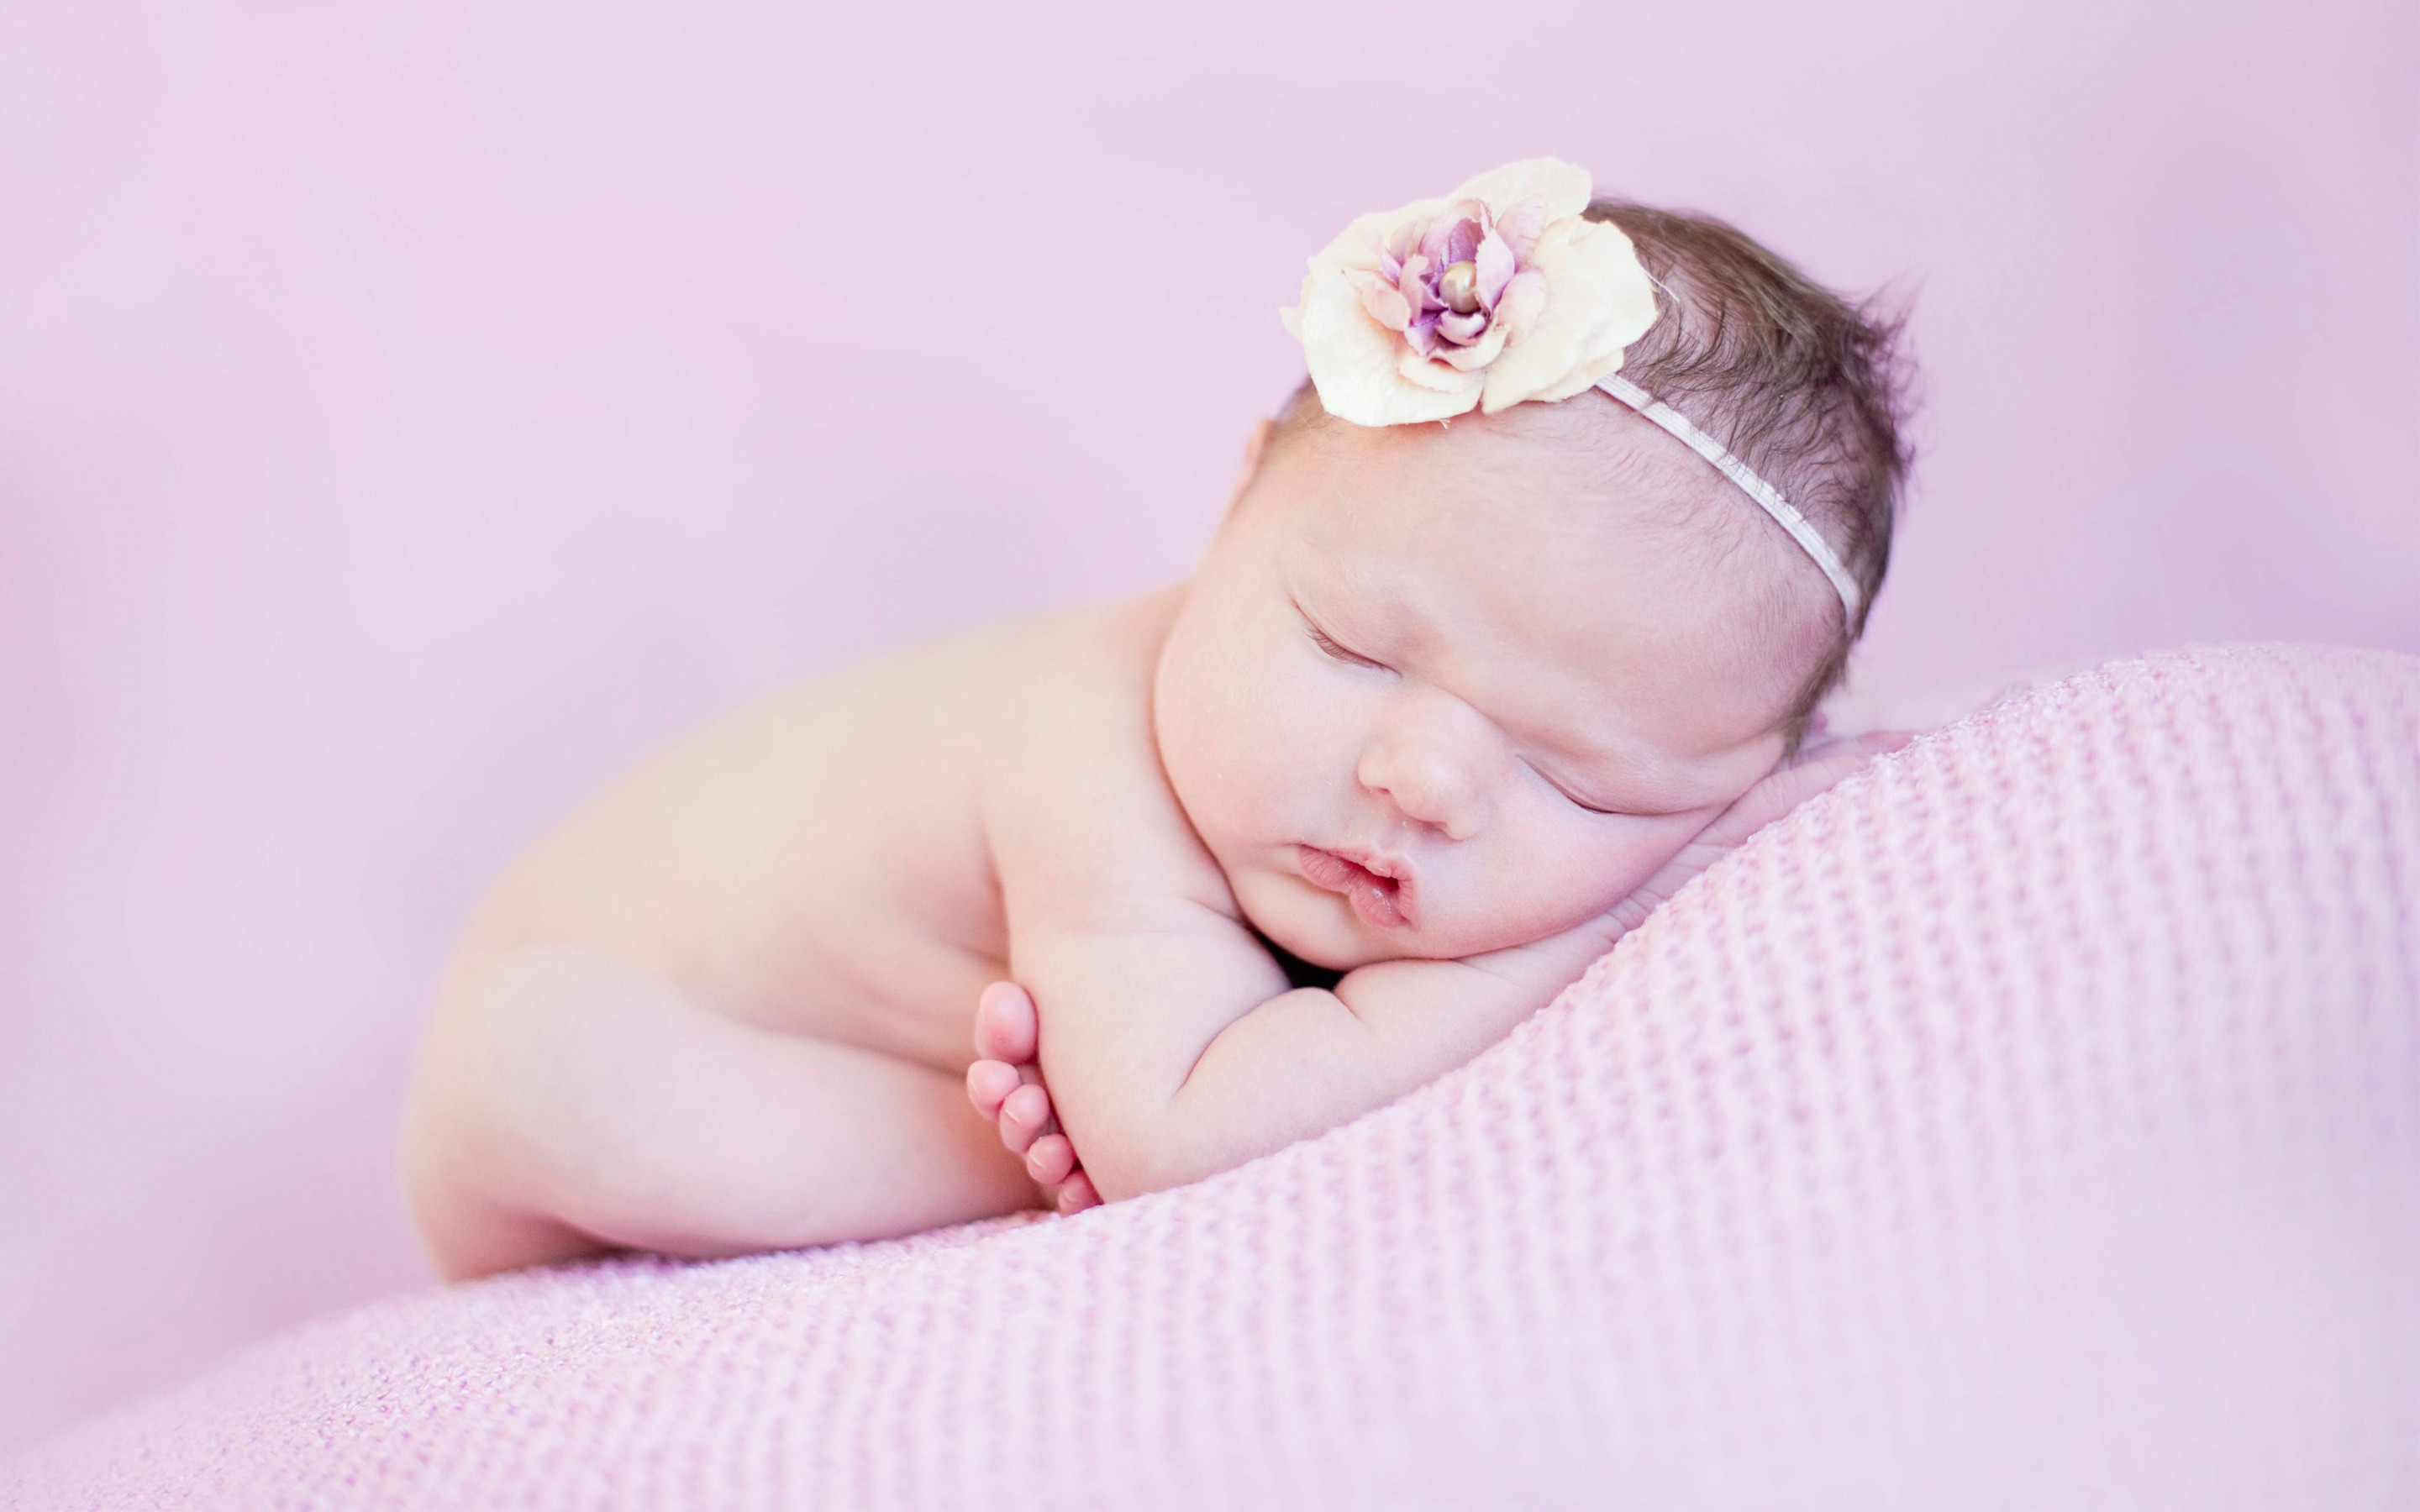 newborn baby cute hd cute 4k wallpapers images